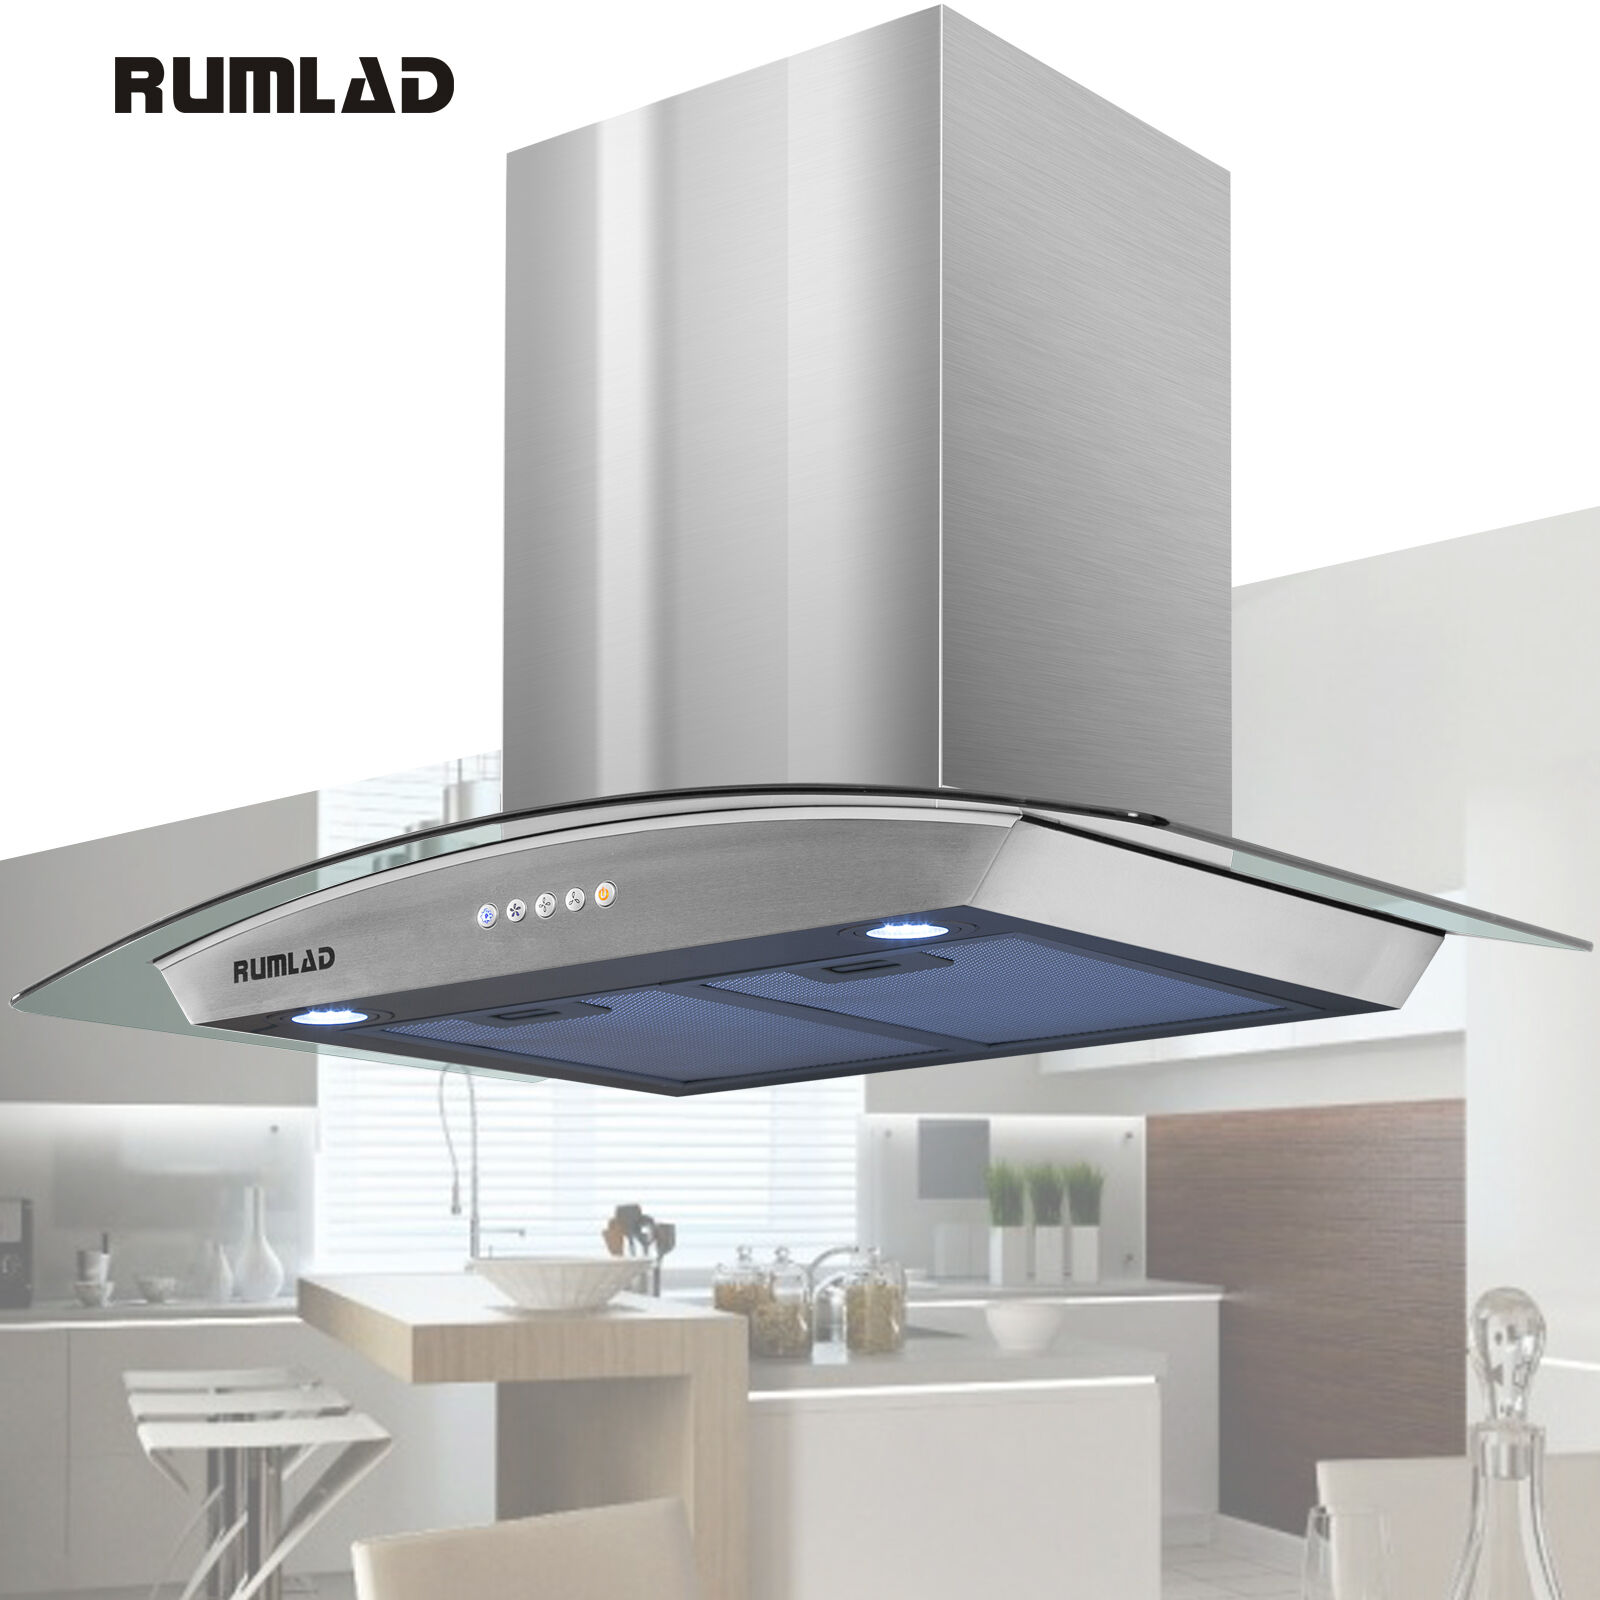 30 stainless steel wall mount range hood stove vent fan with led touch control ebay. Black Bedroom Furniture Sets. Home Design Ideas